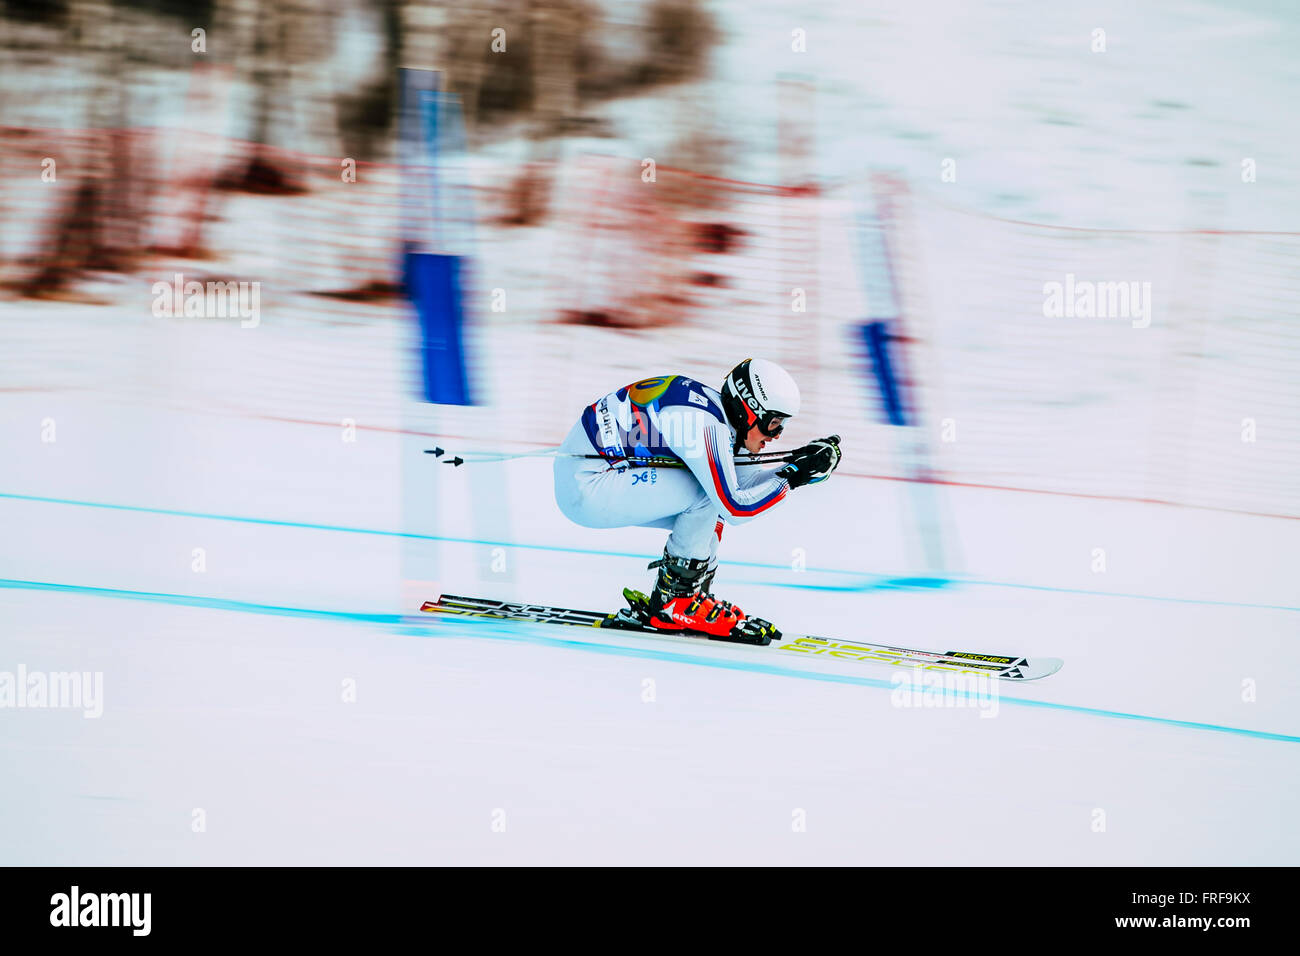 downhill young girl athlete skiing to competition Russian Cup in alpine skiing. background blur effect - Stock Image